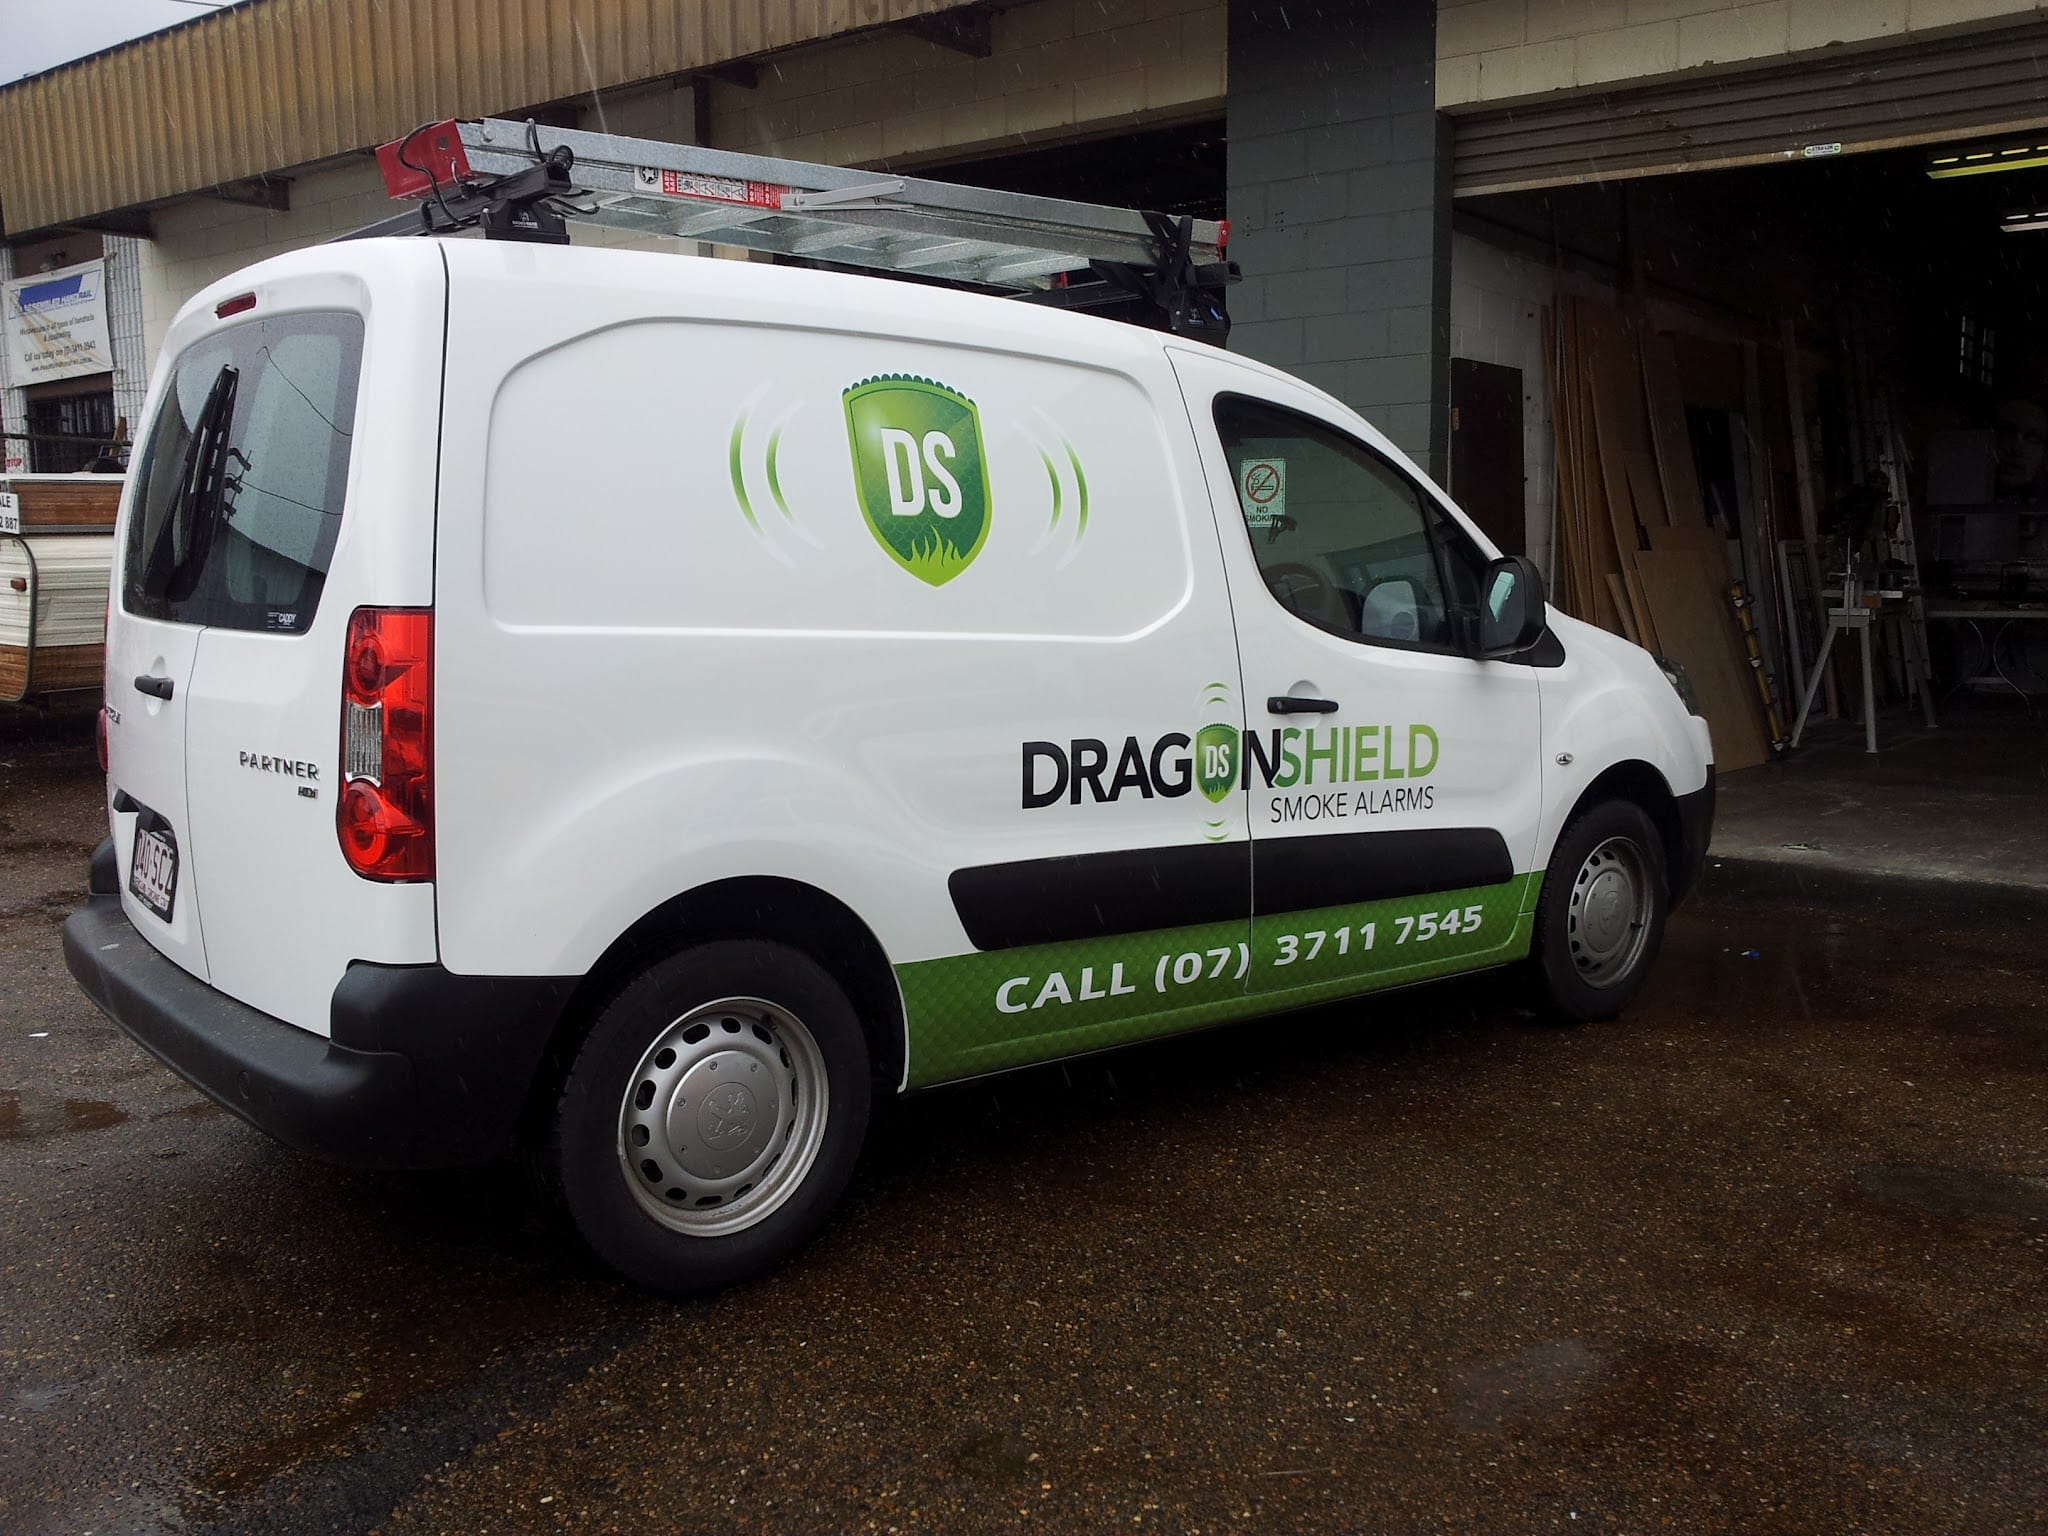 Dragon Shield Smoke Alarms Vehicle Signage